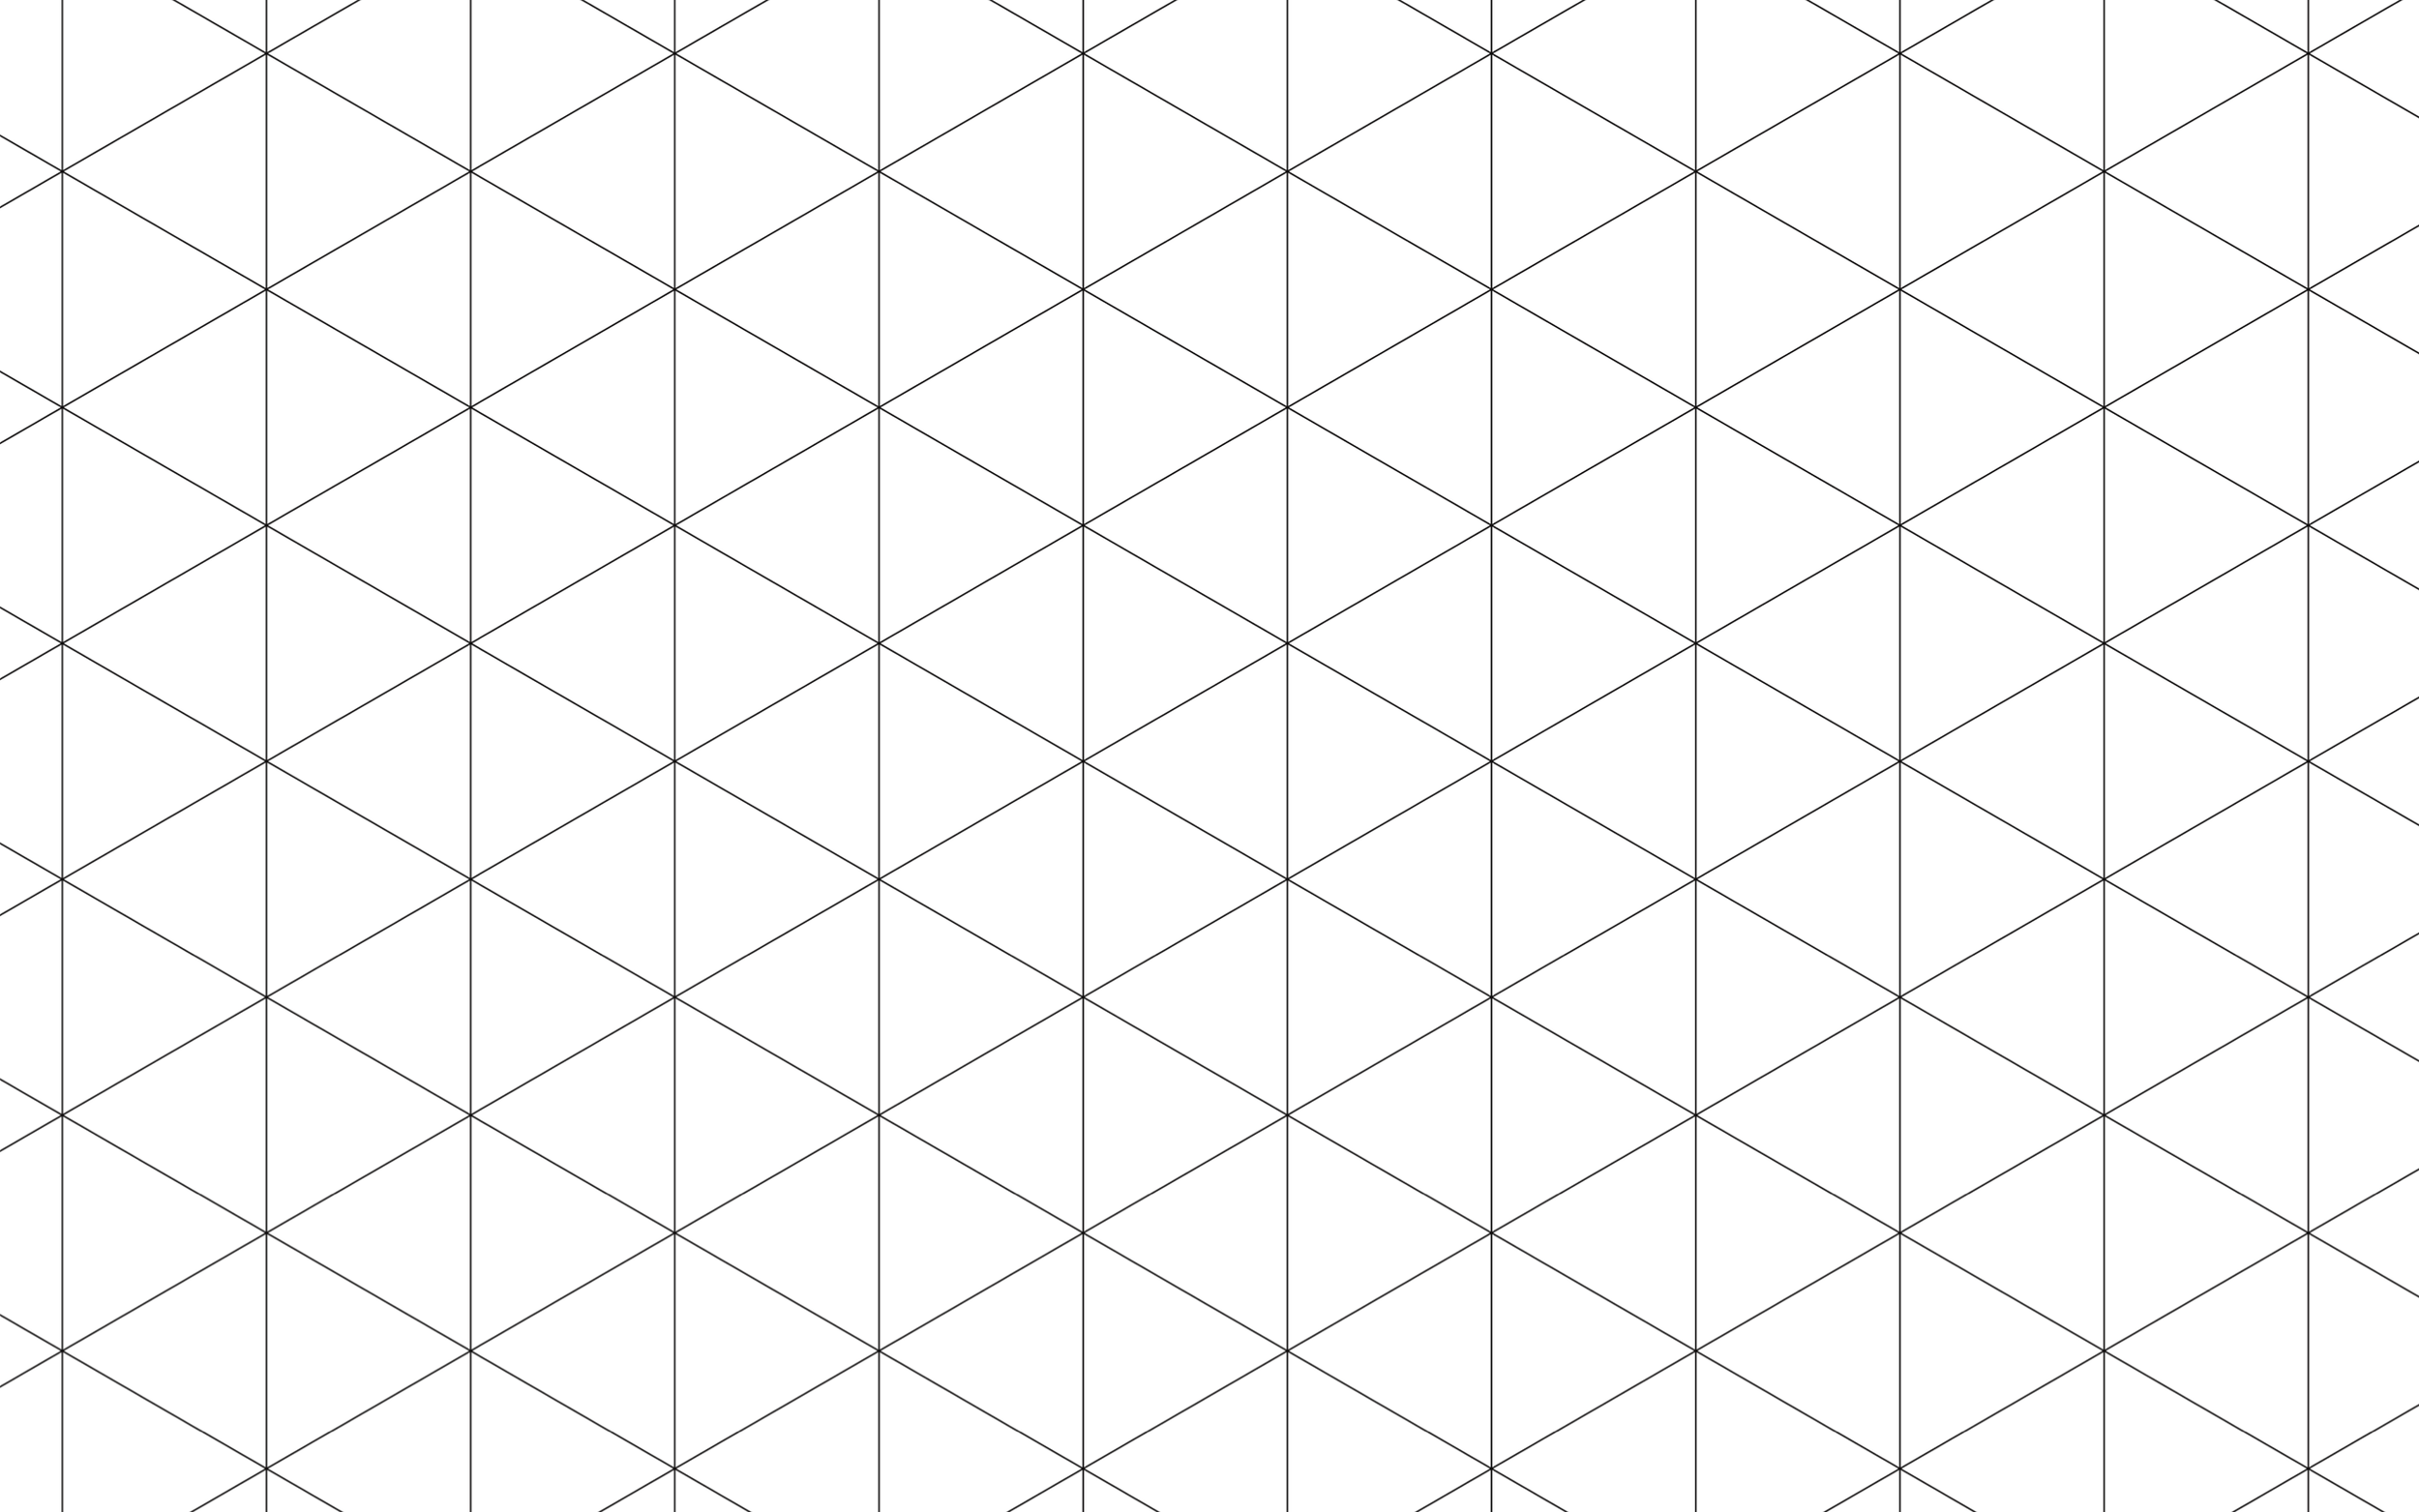 Early pattern diagram experimenting with the hexagonal pyramid shape.